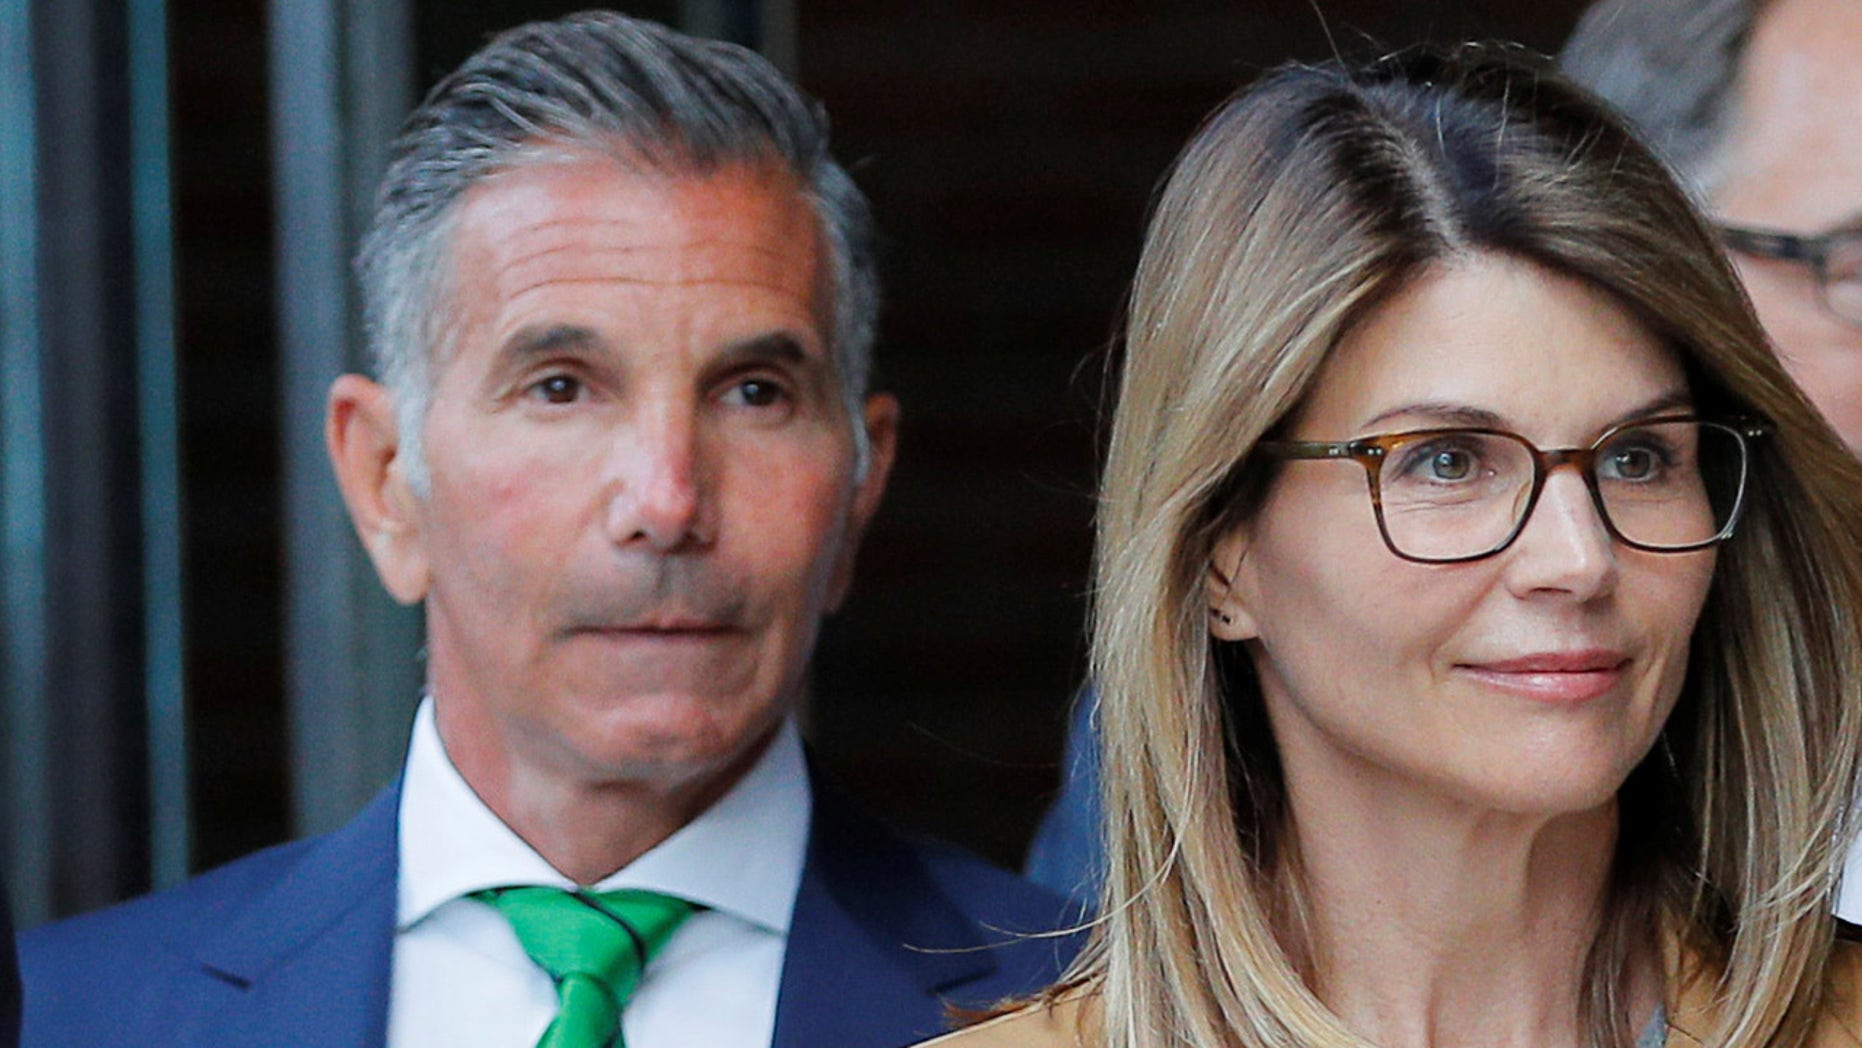 Lori Loughlin's husband Mossimo Giannulli released early from home confinement: report